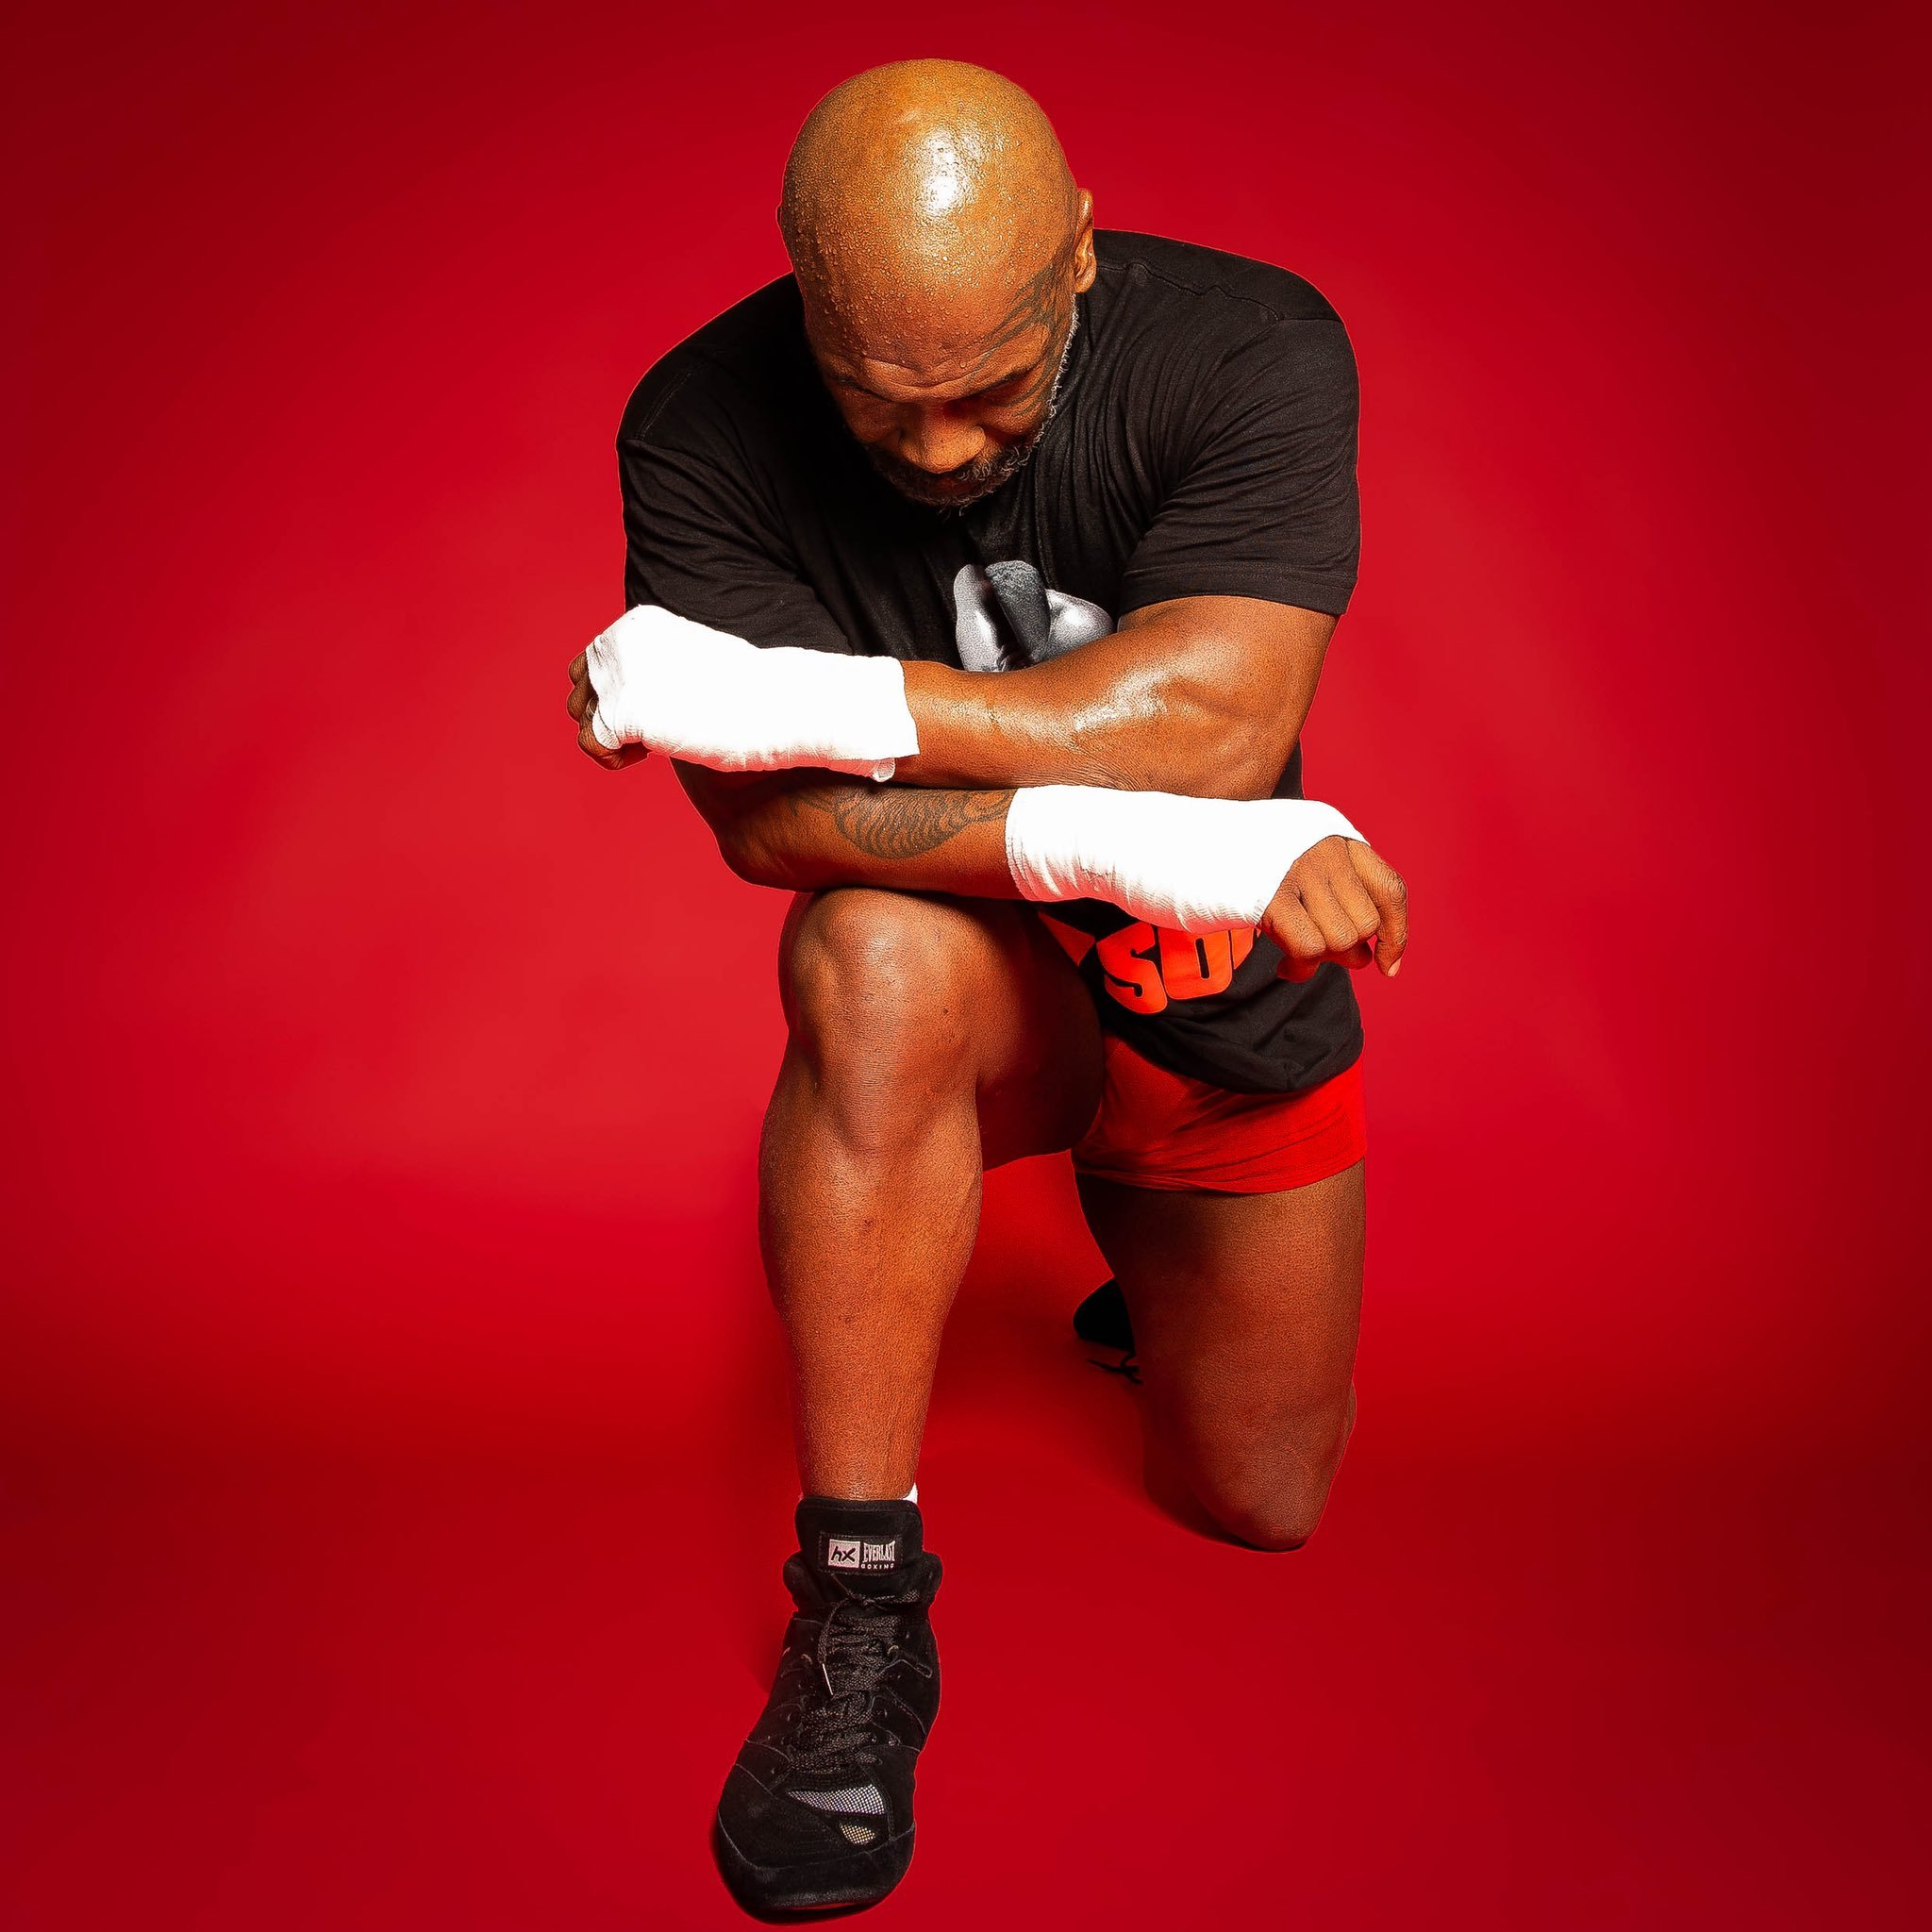 MIKE TYSON TAKES A KNEE 2020